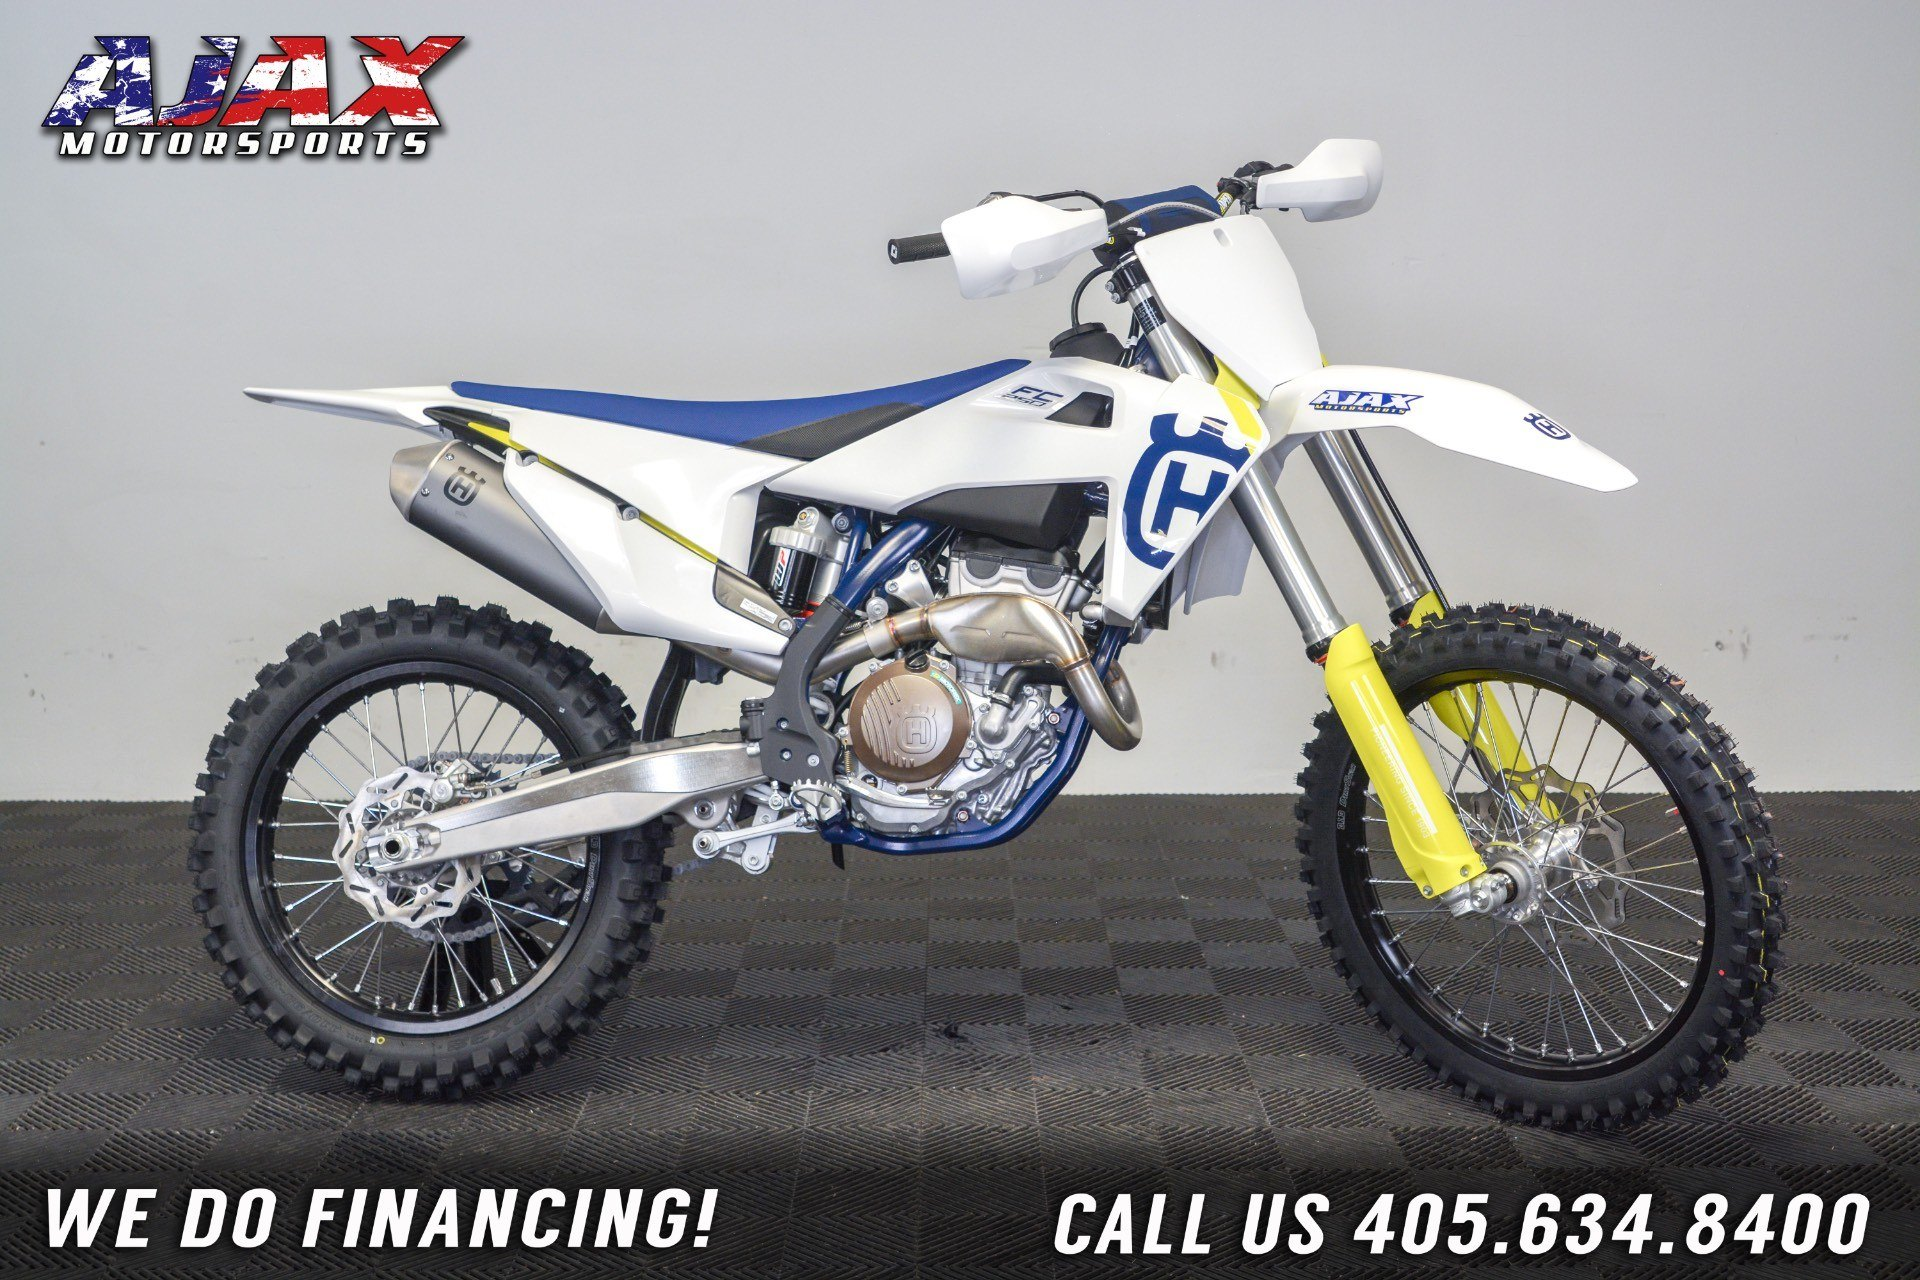 2019 Husqvarna FC 250 for sale 3030